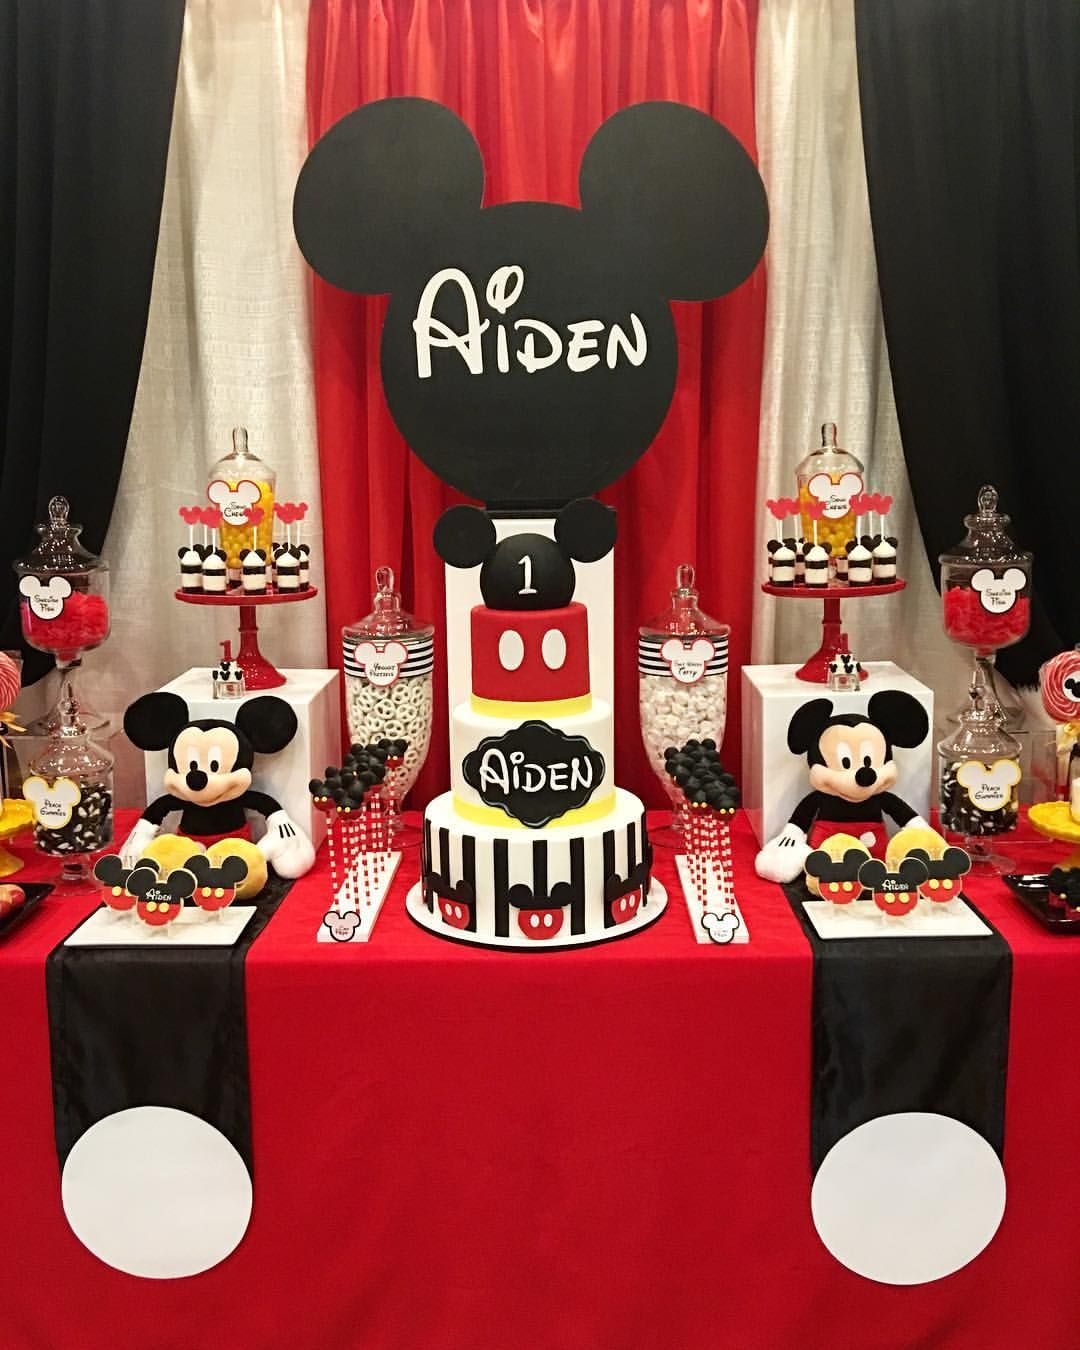 Rachel Nvard Jingozian On Instagram Ca Closer Look At Our Mickey Mouse Themed Dessert Table For